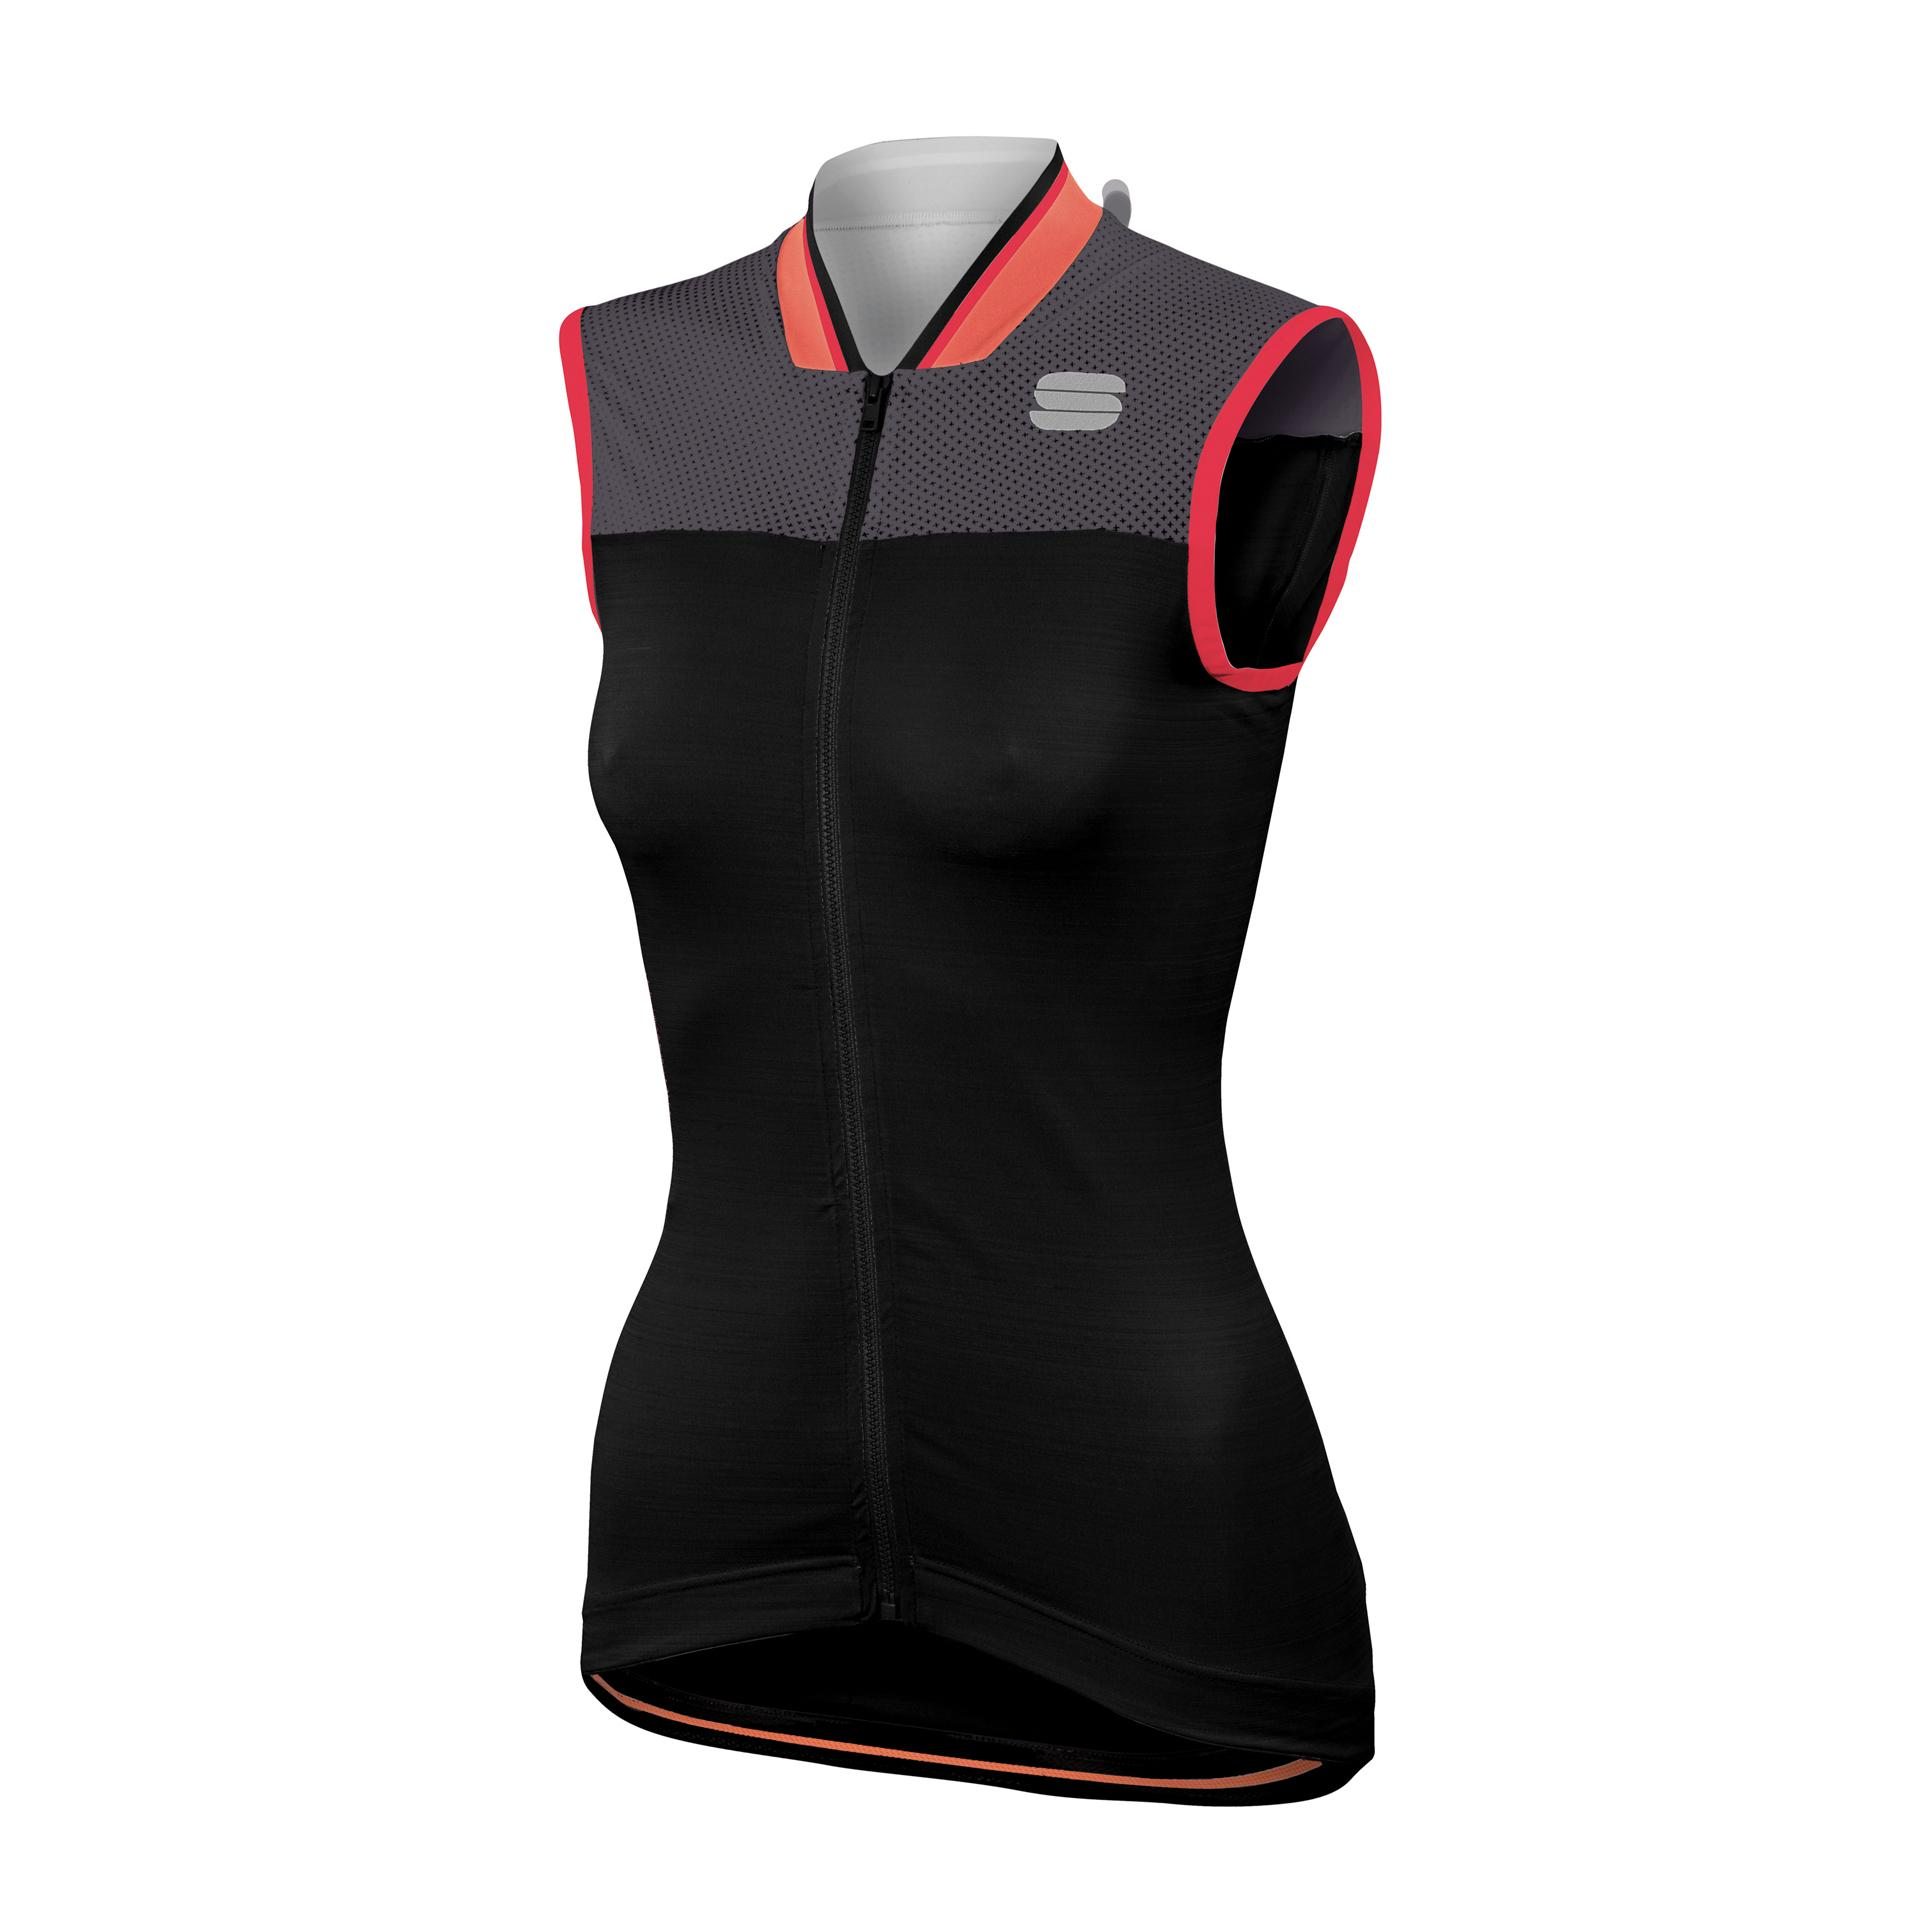 Sportful Fietsshirt mouwloos Dames Zwart Grijs / SF Grace Sleeveless-Black/Anthracite